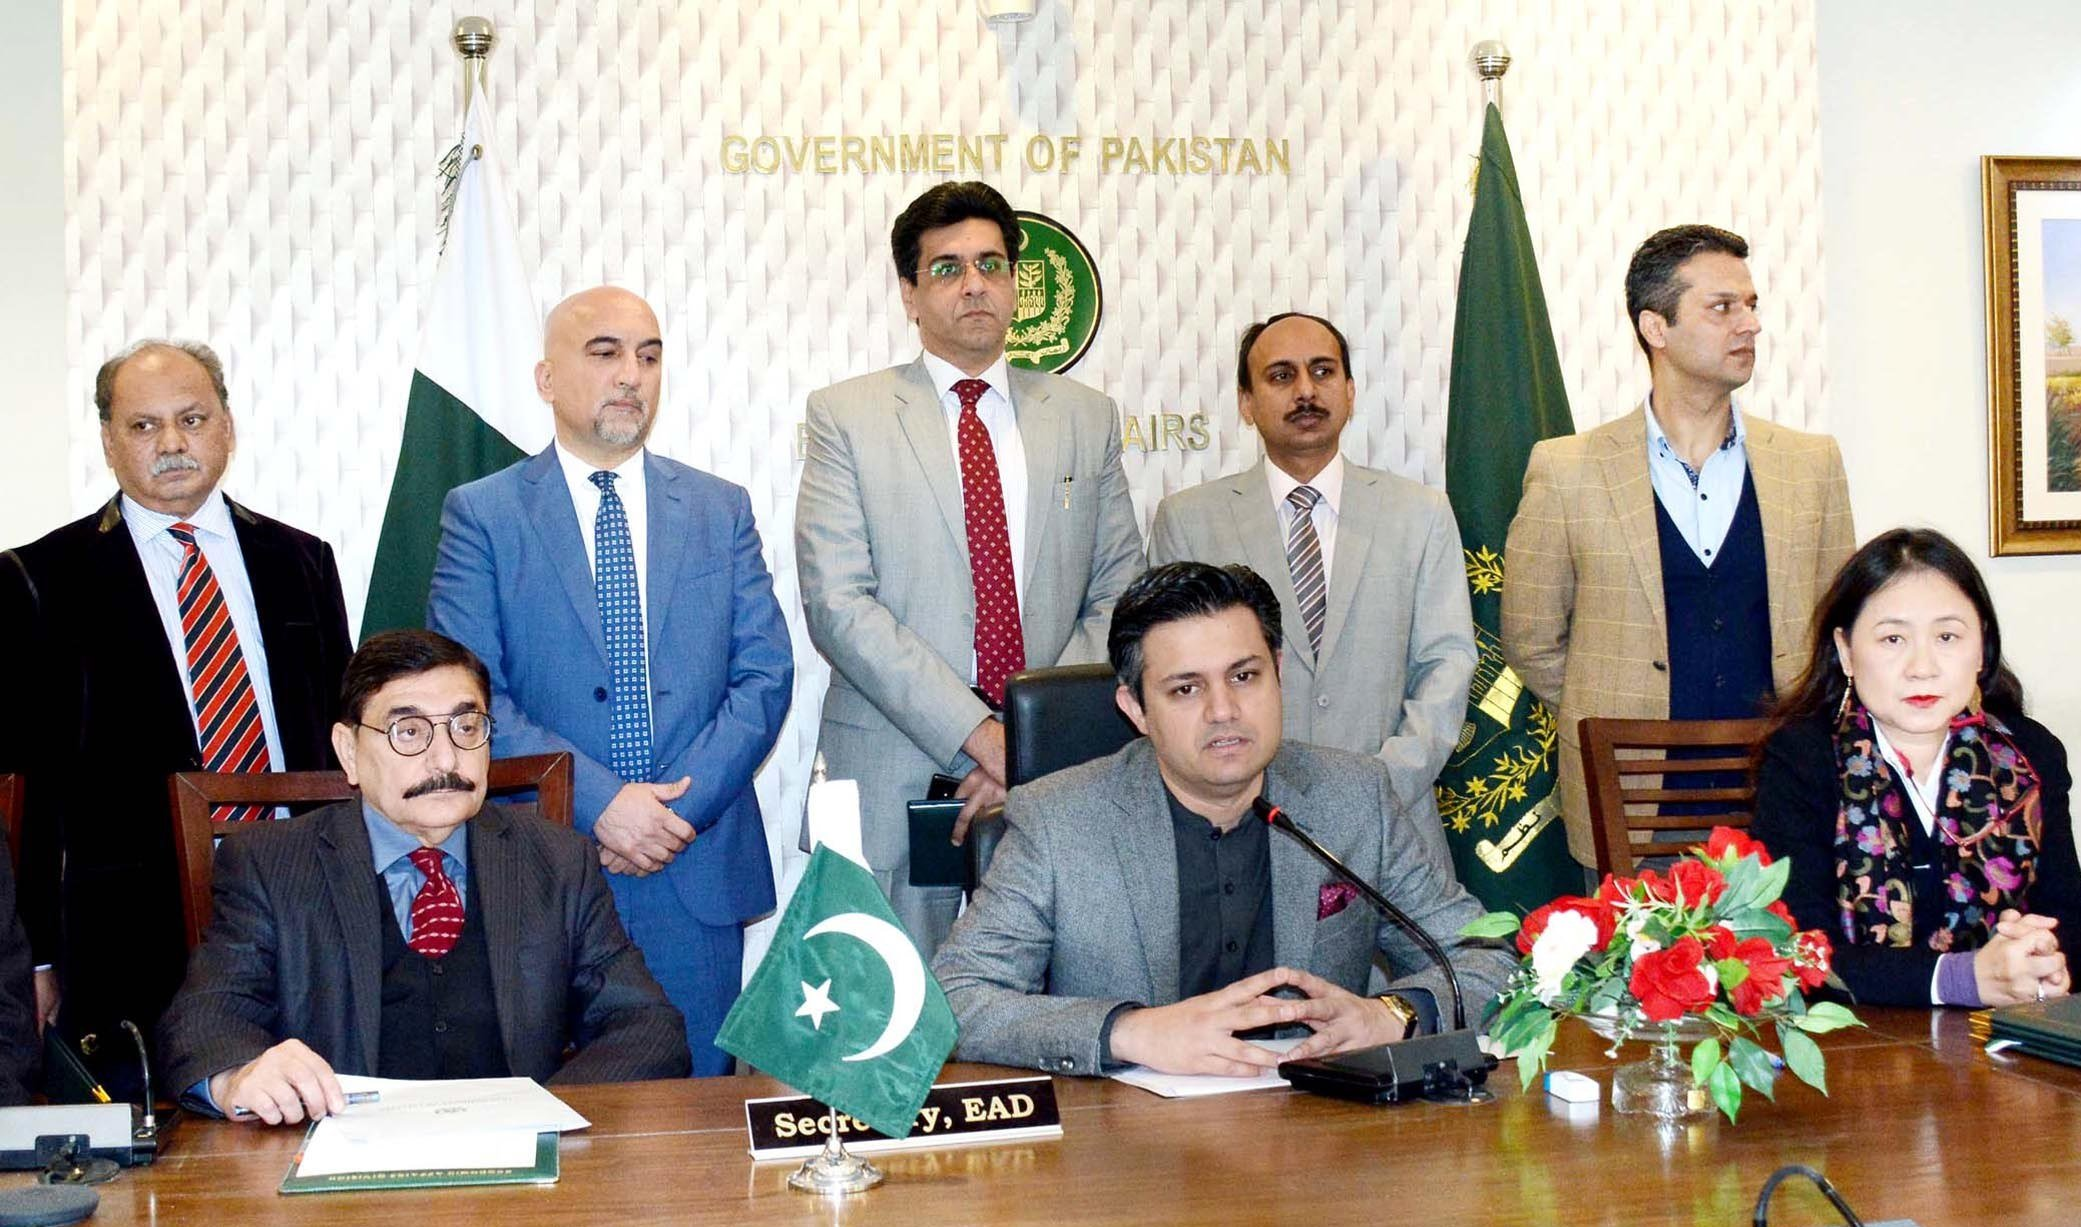 Economic Affairs Division Secretary Dr Syed Pervaiz Abbas and Asian Development Bank Country Director Xiaohong Yang sign loan agreements in Islamabad.